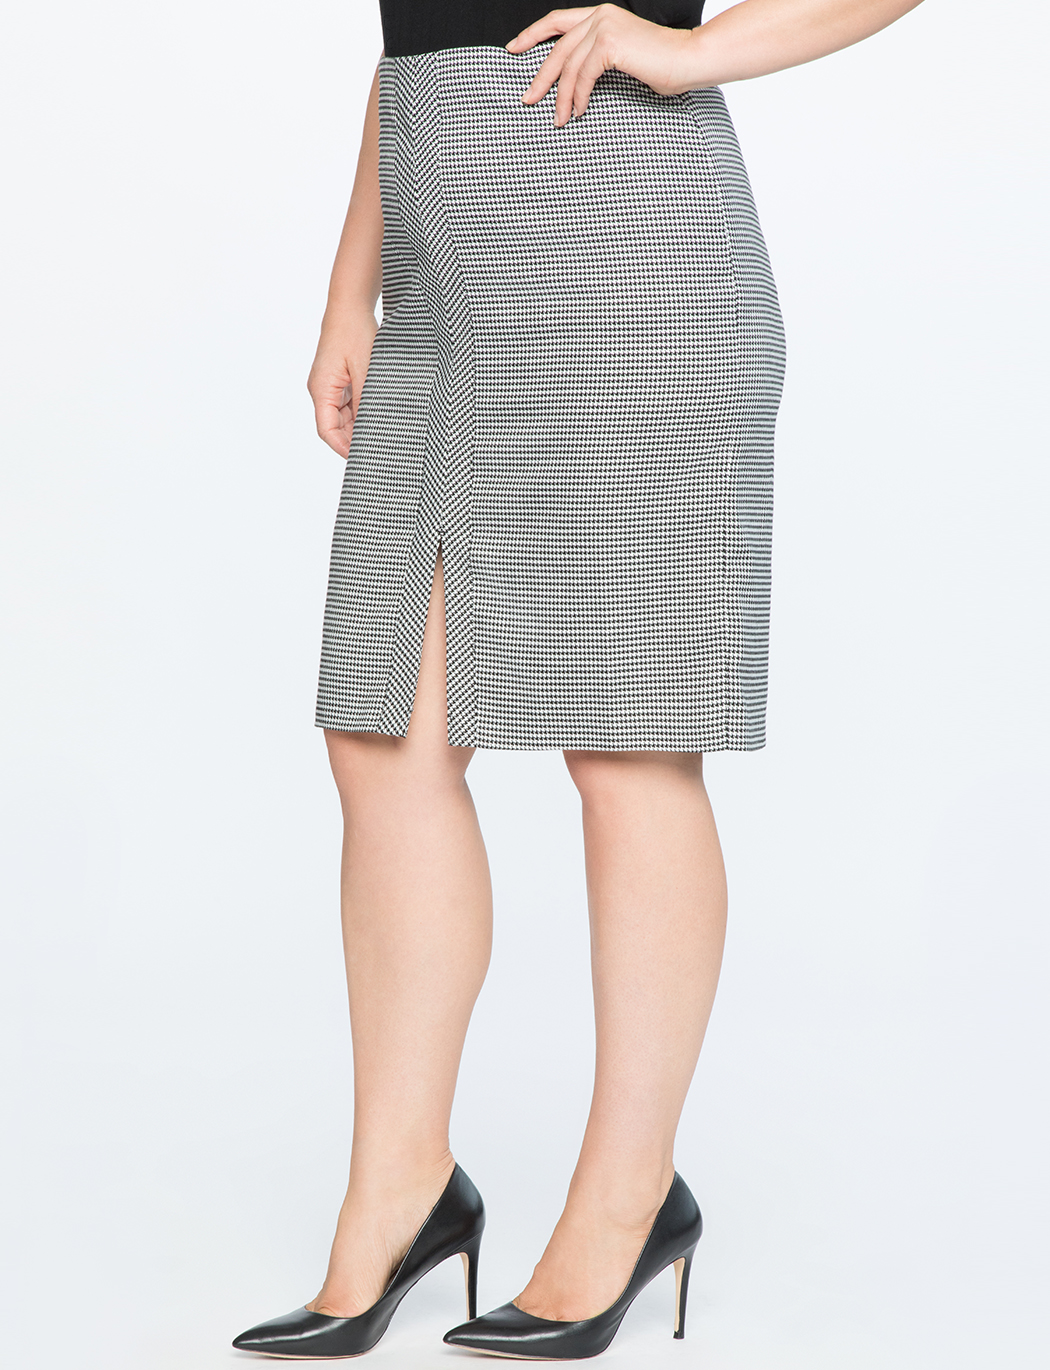 Double Slit Houndstooth Skirt    $39.90